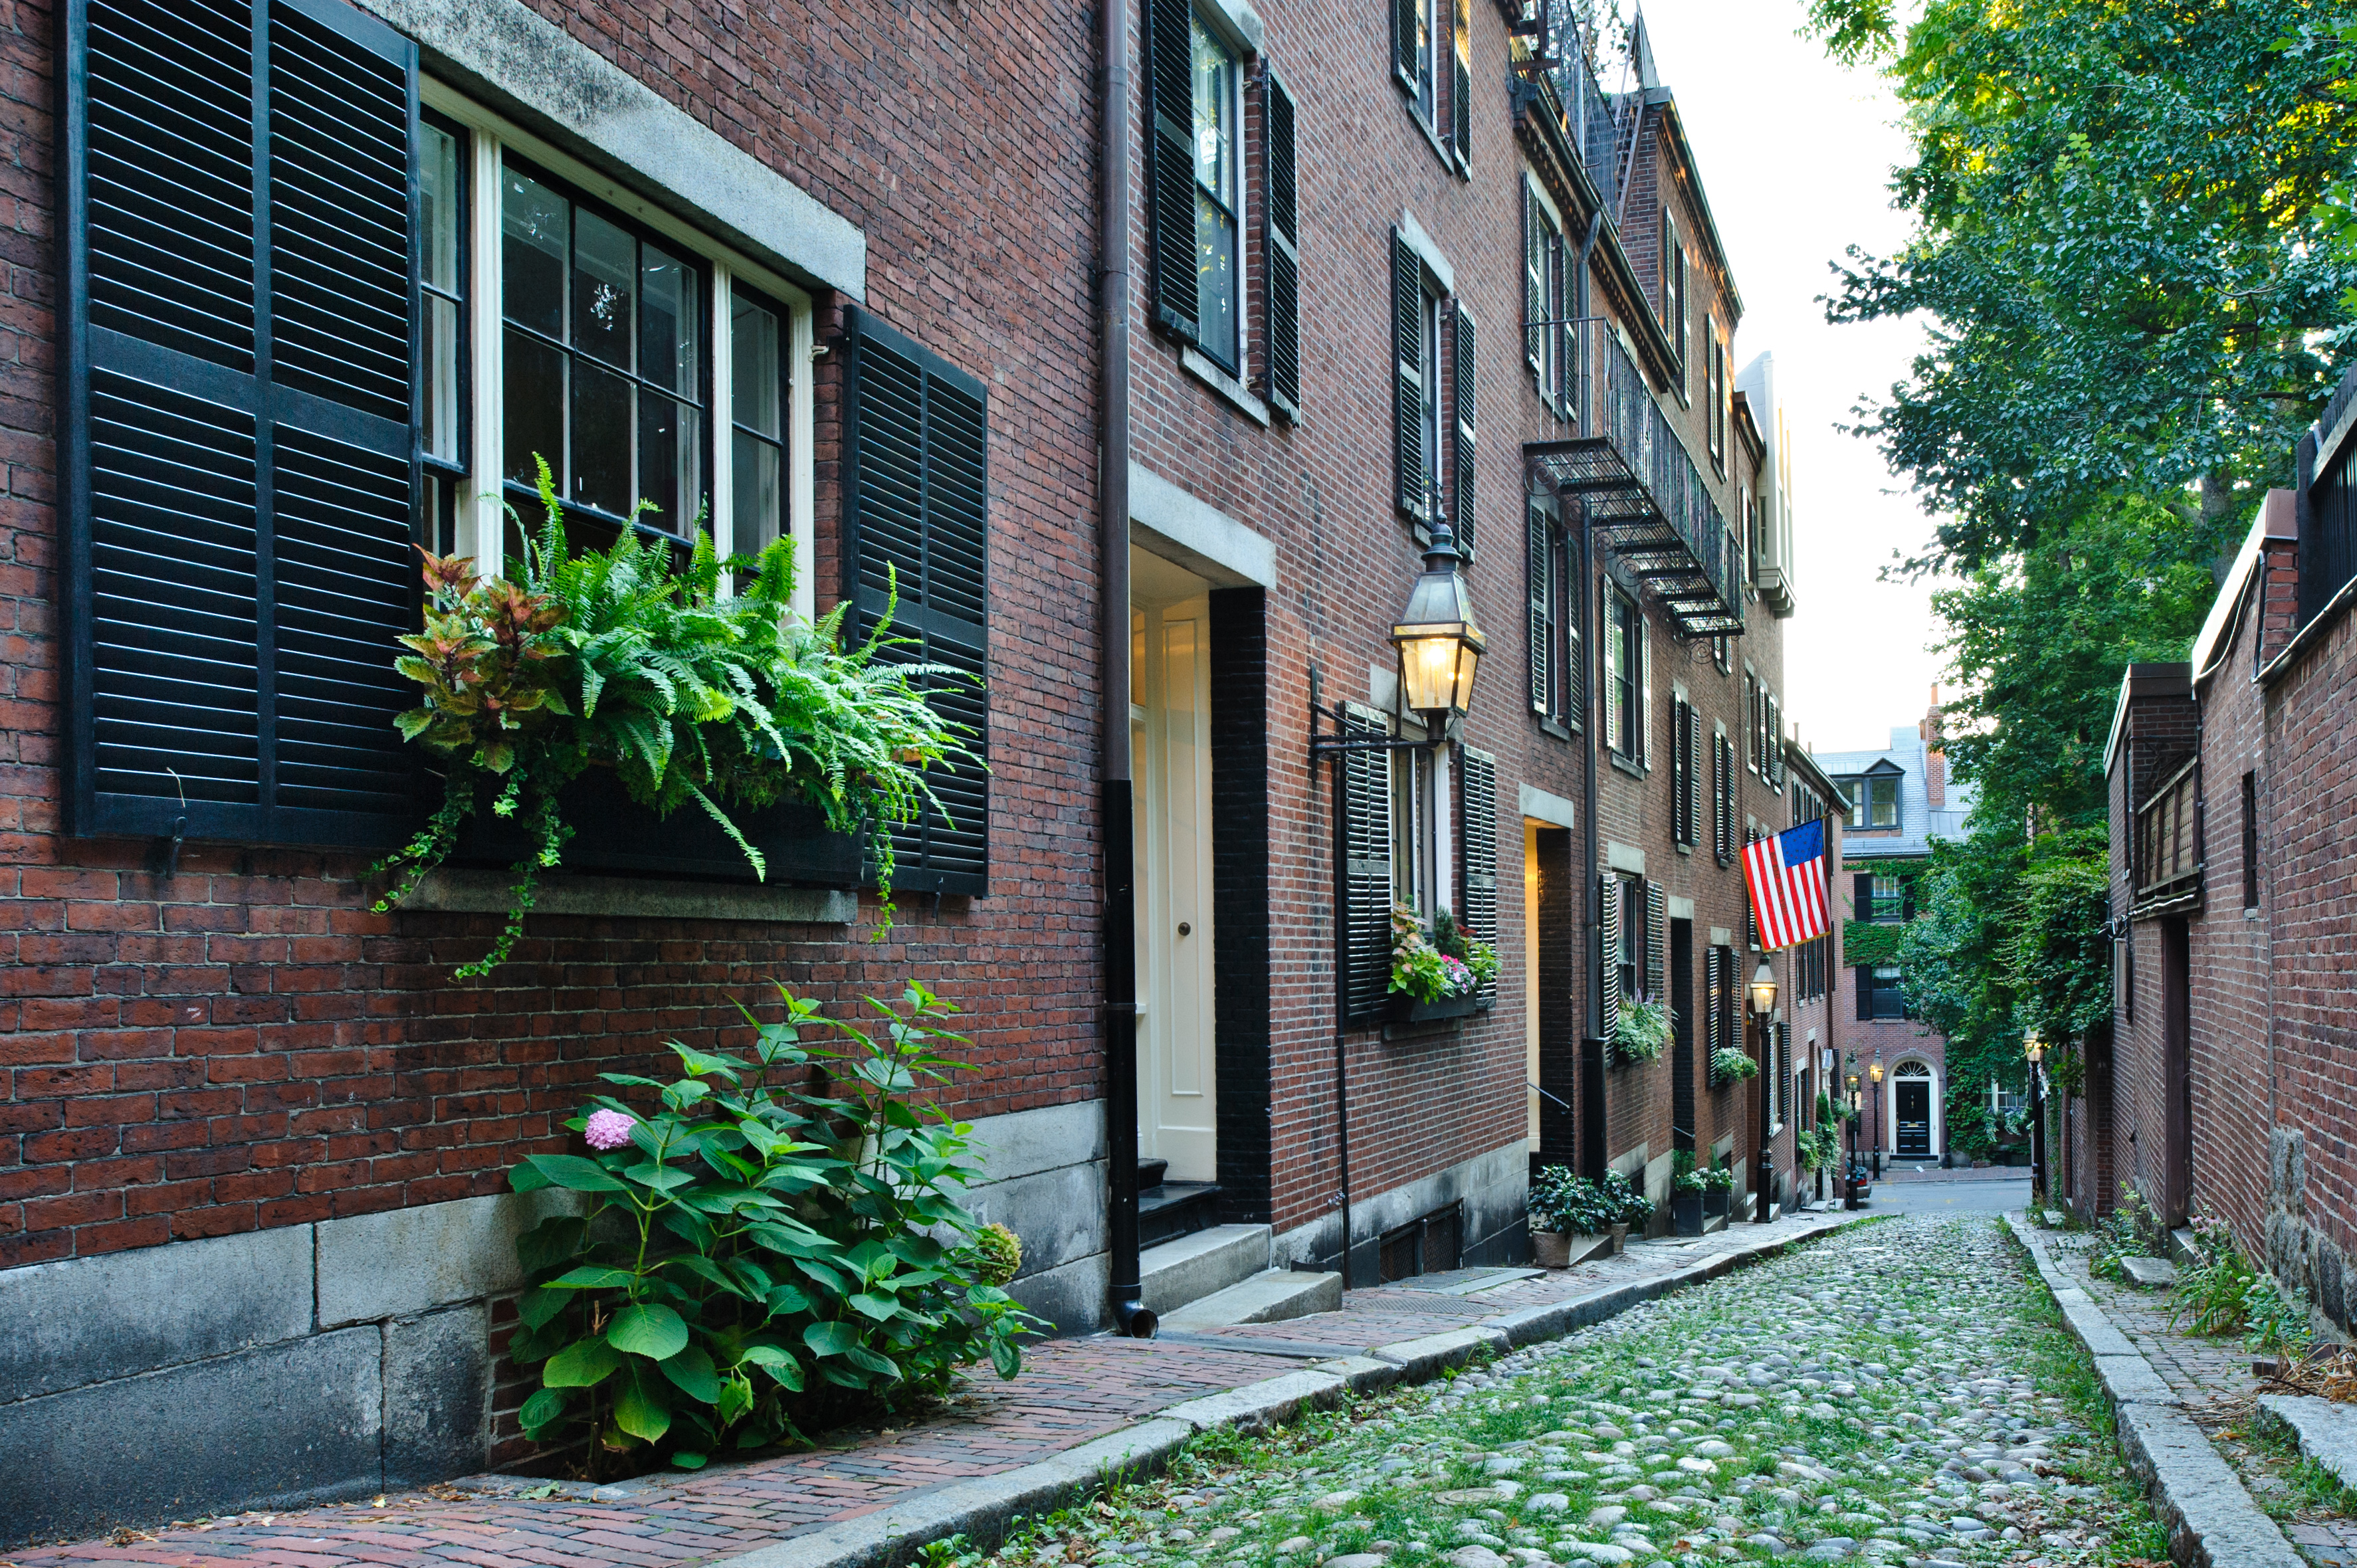 Own a home on one of the most photographed streets for $3.4 million